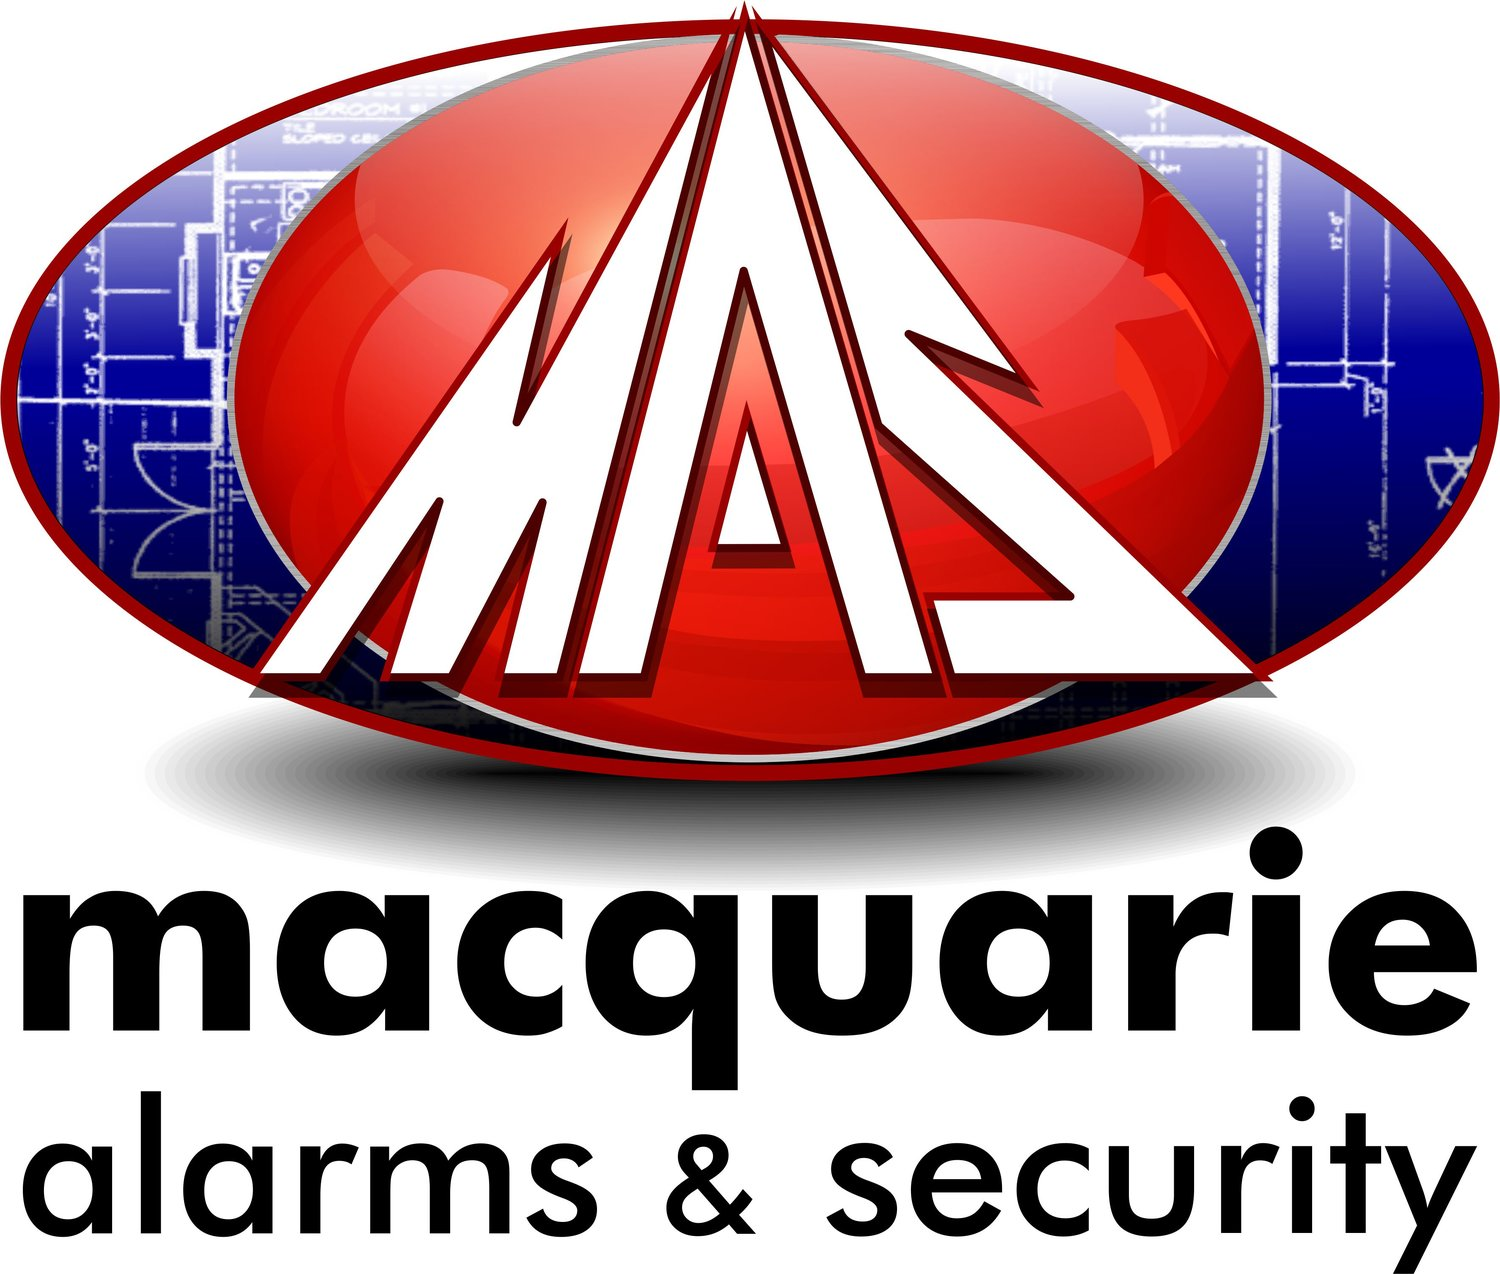 Macquarie Alarms & Security